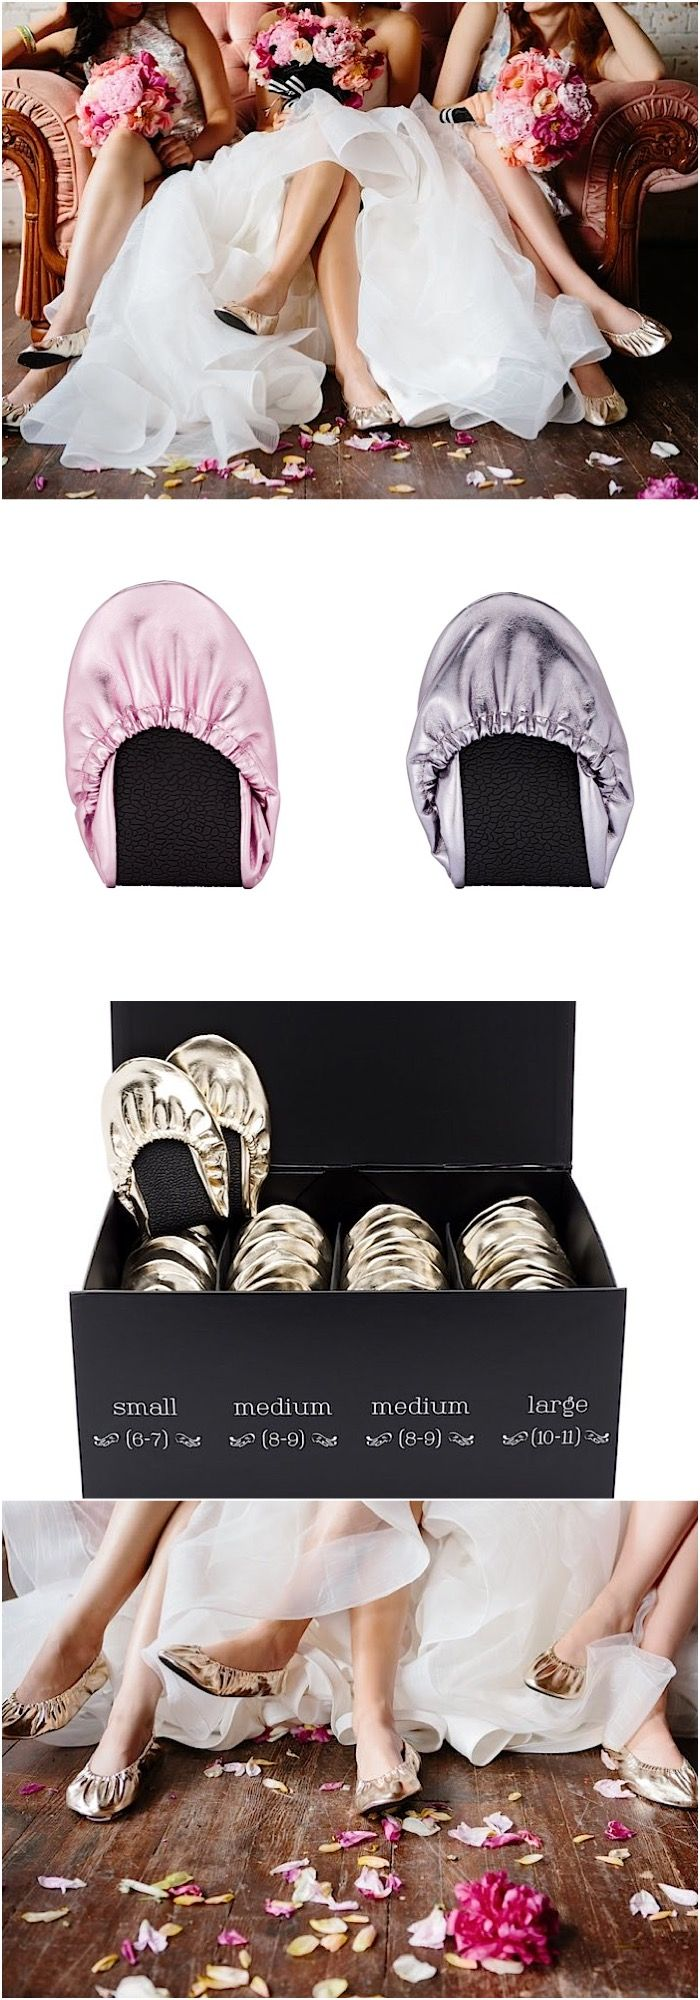 Bridesmaid Gift Idea: The perfect treat for your guests' feet, check out rescueflats.com and their limited edition colors in lavender and blush! And take 10% off with promo code MOD10.